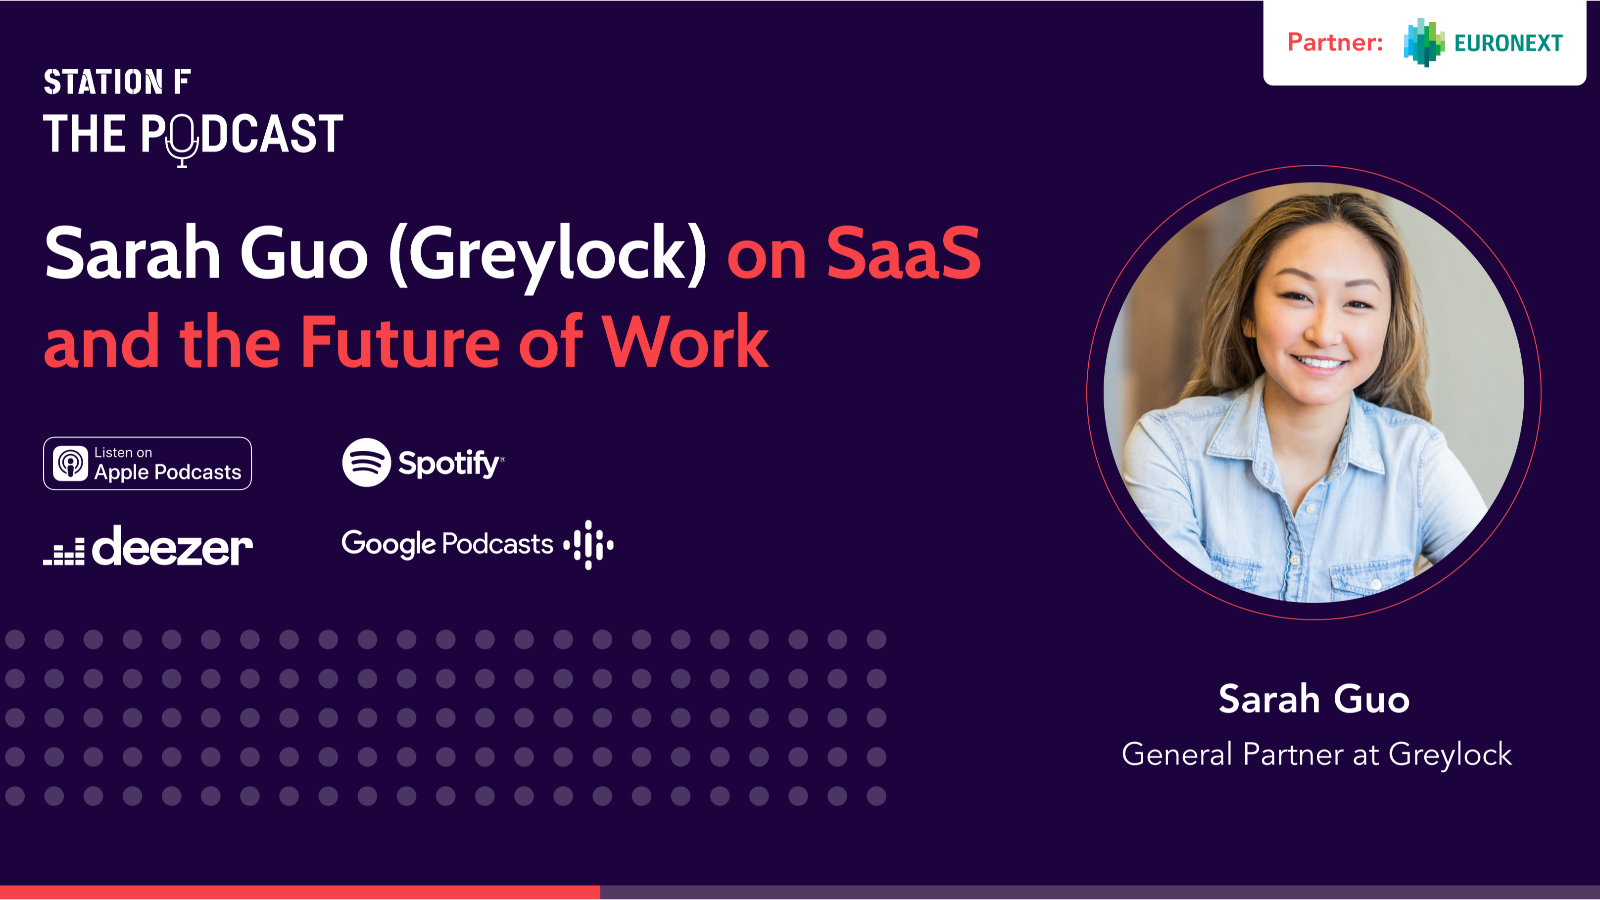 Thumbnail for news article called Sarah Guo (General Partner at Greylock) on SaaS and the Future of Work